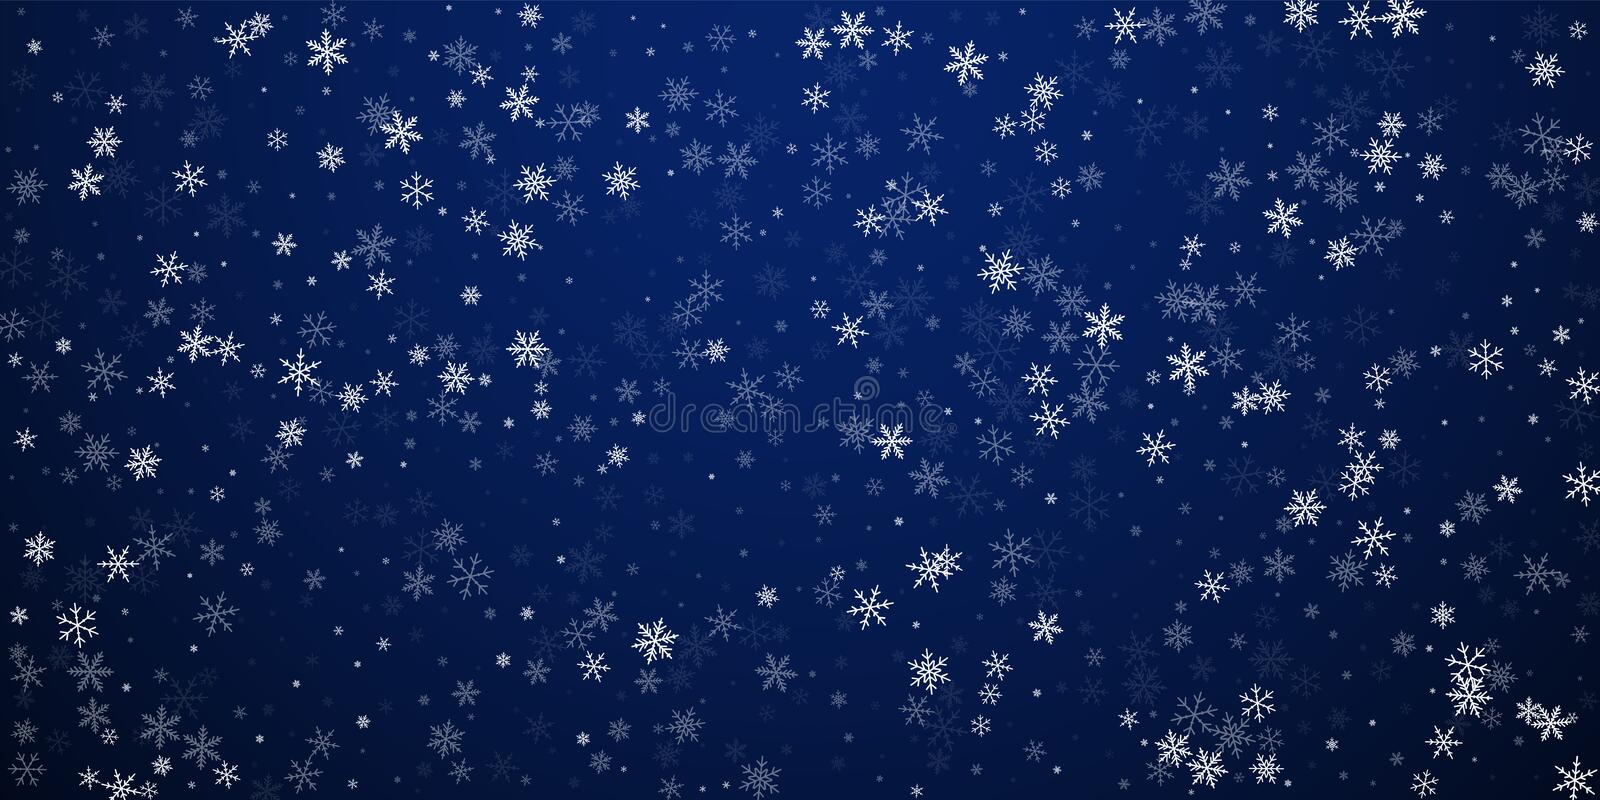 Sparse snowfall Christmas background. Subtle flyin. G snow flakes and stars on dark blue night background. Beautiful winter silver snowflake overlay template stock illustration